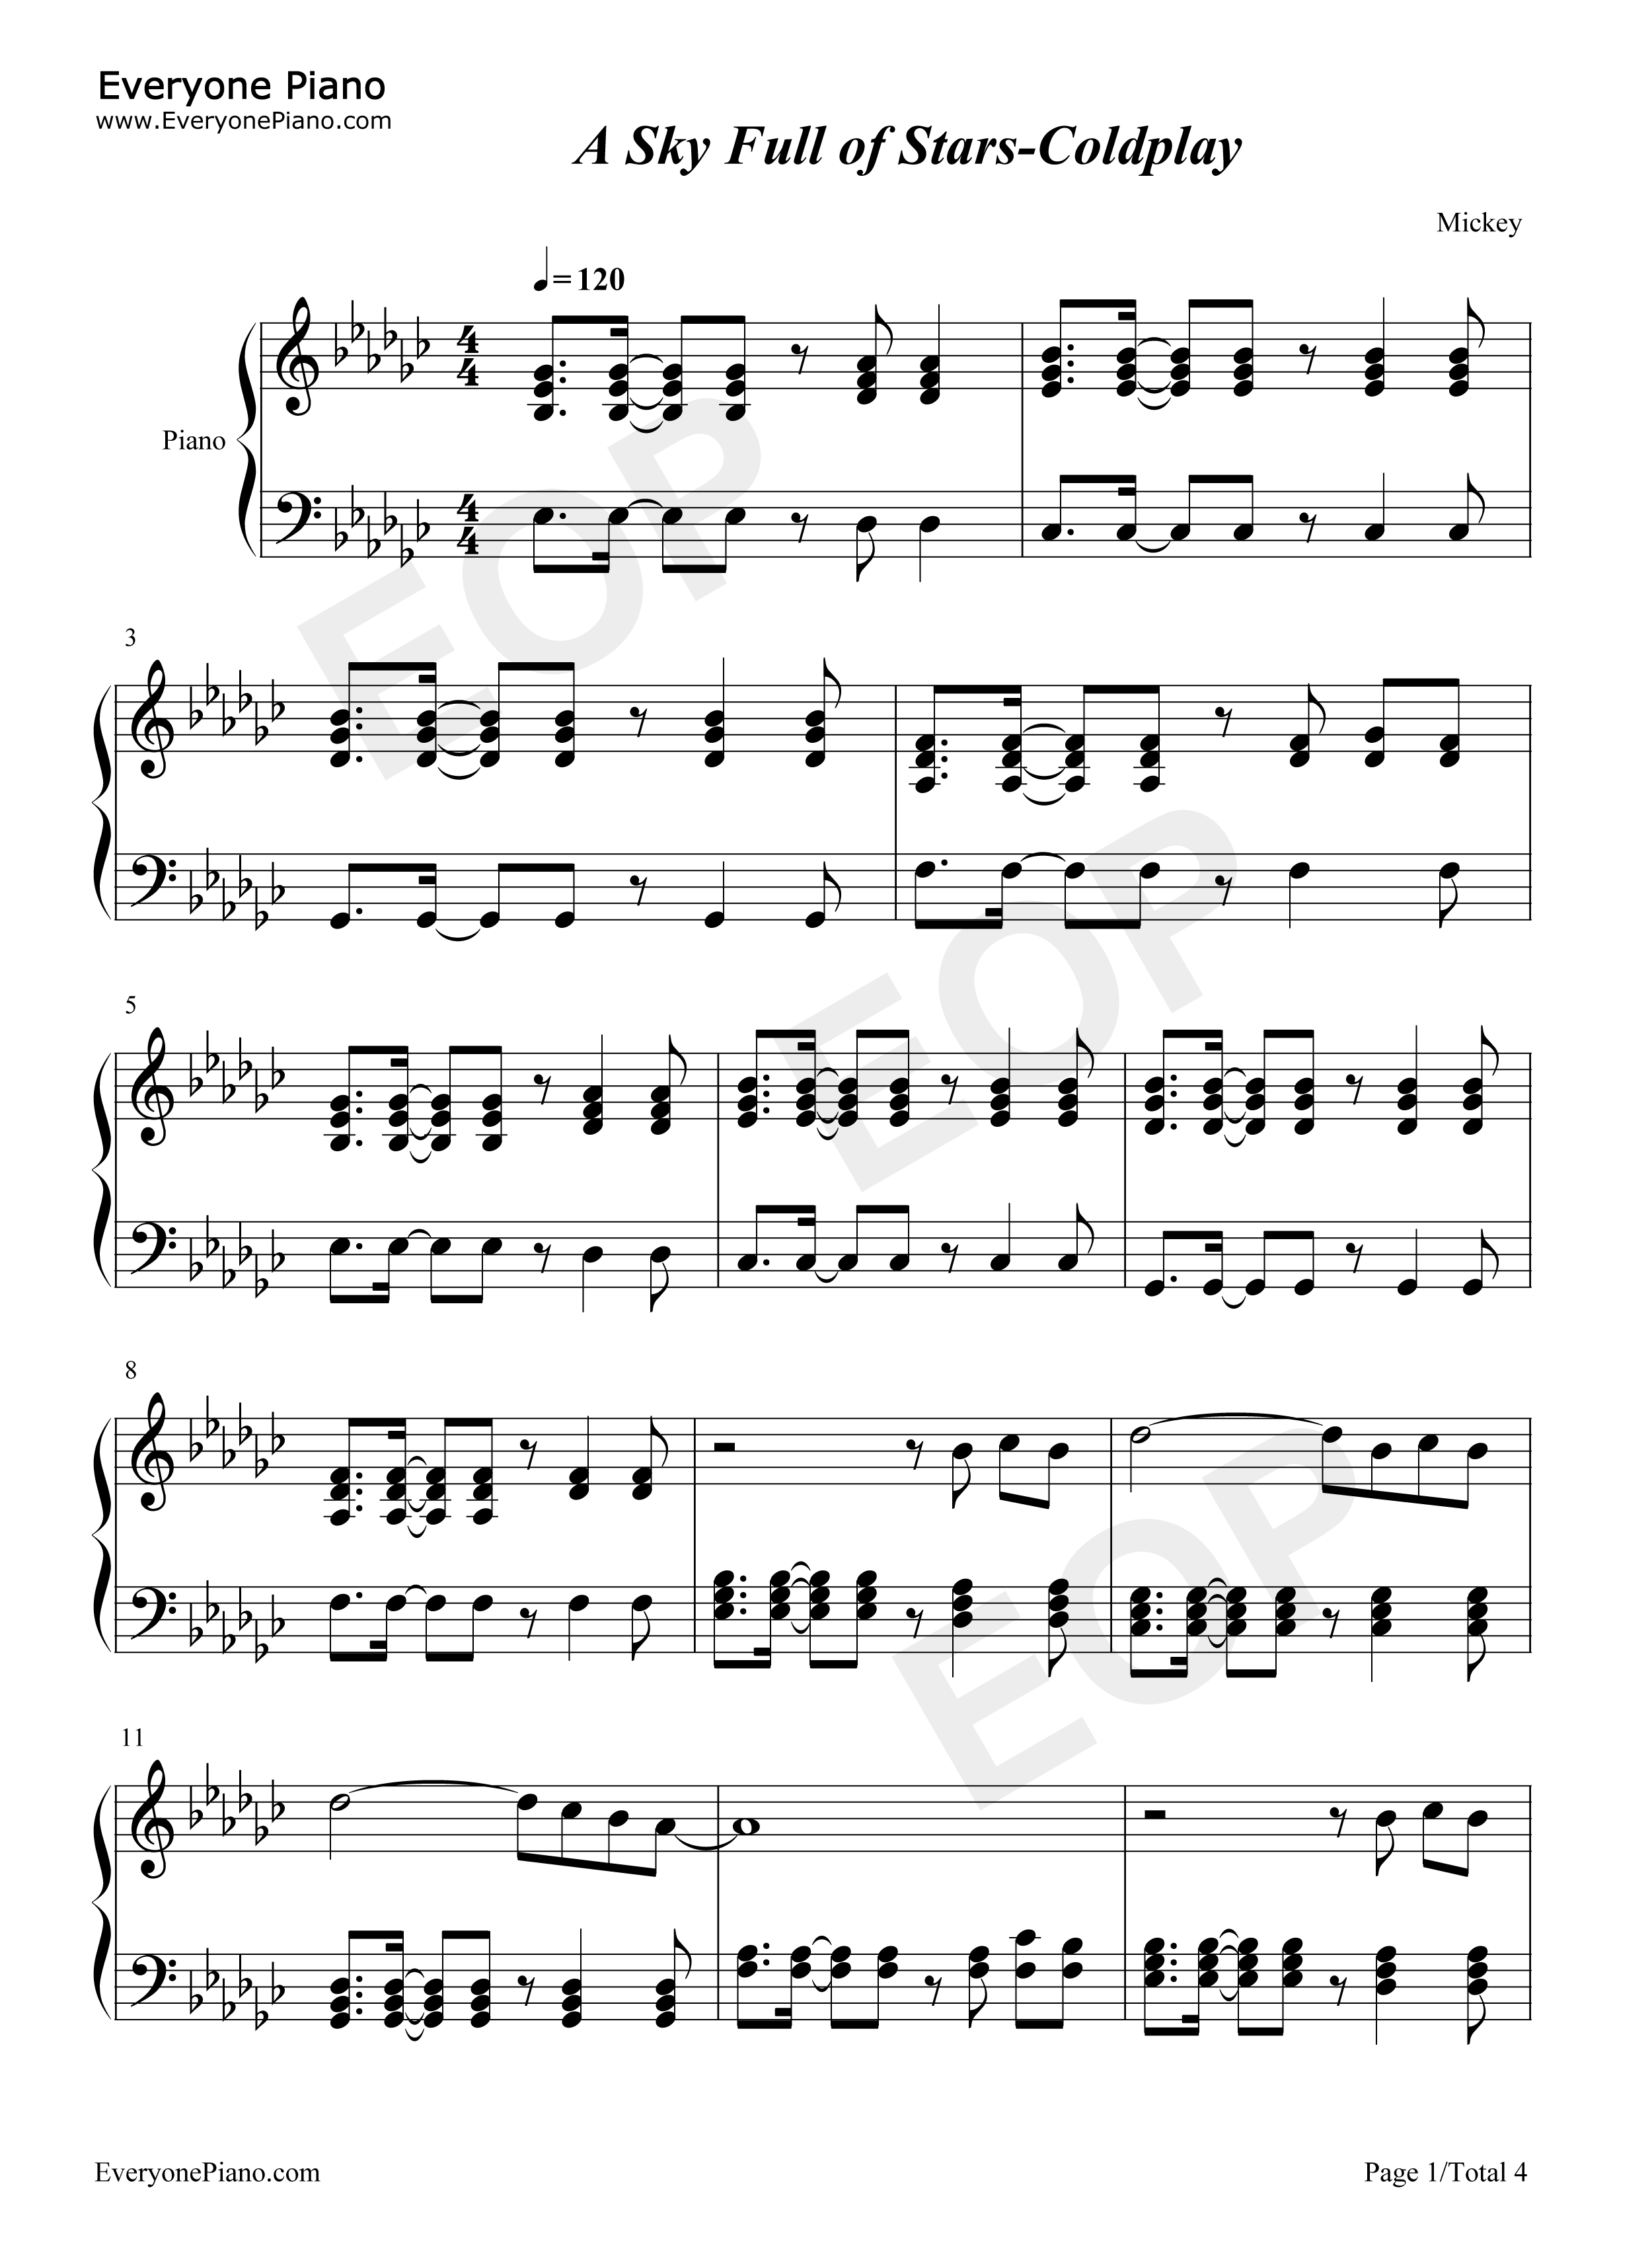 A sky full of stars coldplay stave preview 1 free piano sheet listen now print sheet a sky full of stars coldplay stave preview 1 hexwebz Gallery